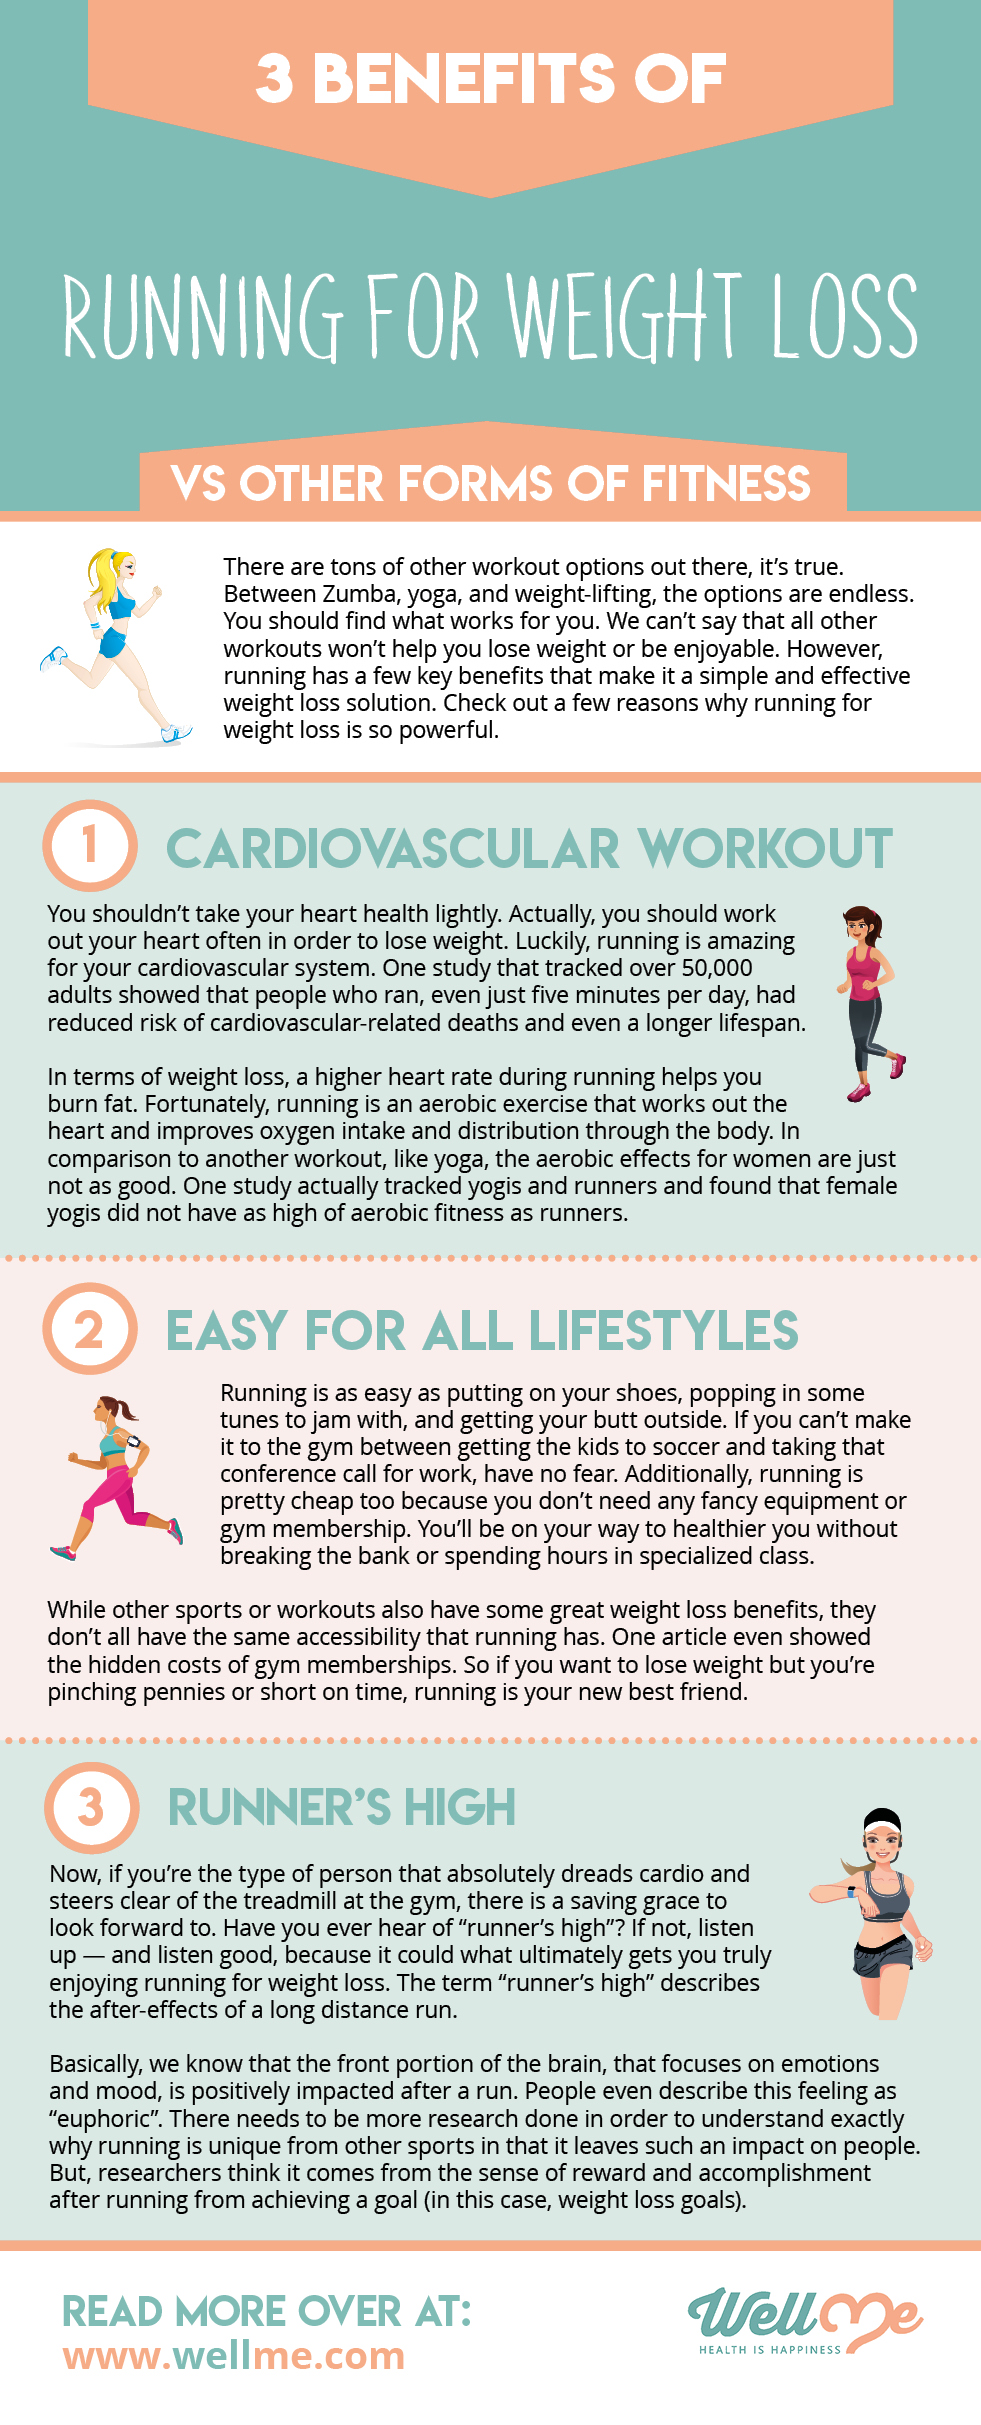 Running For Weight Loss Vs Other Forms of Fitness infographic